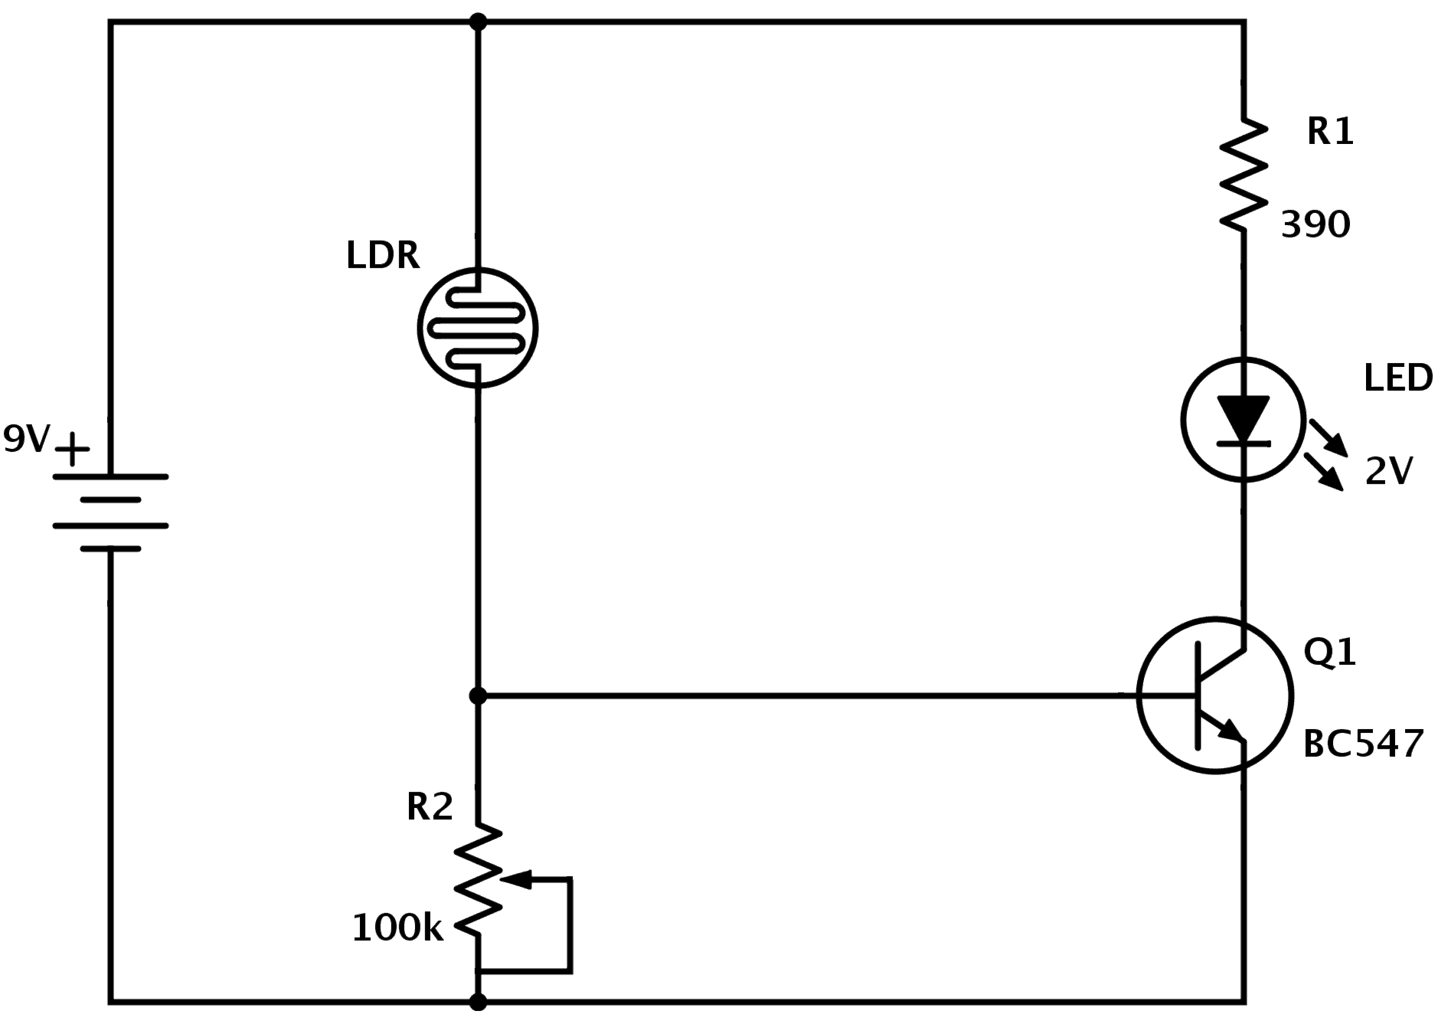 2 Wire Proximity Sensor Wiring Diagram Ldr Circuit Build Electronic Circuits